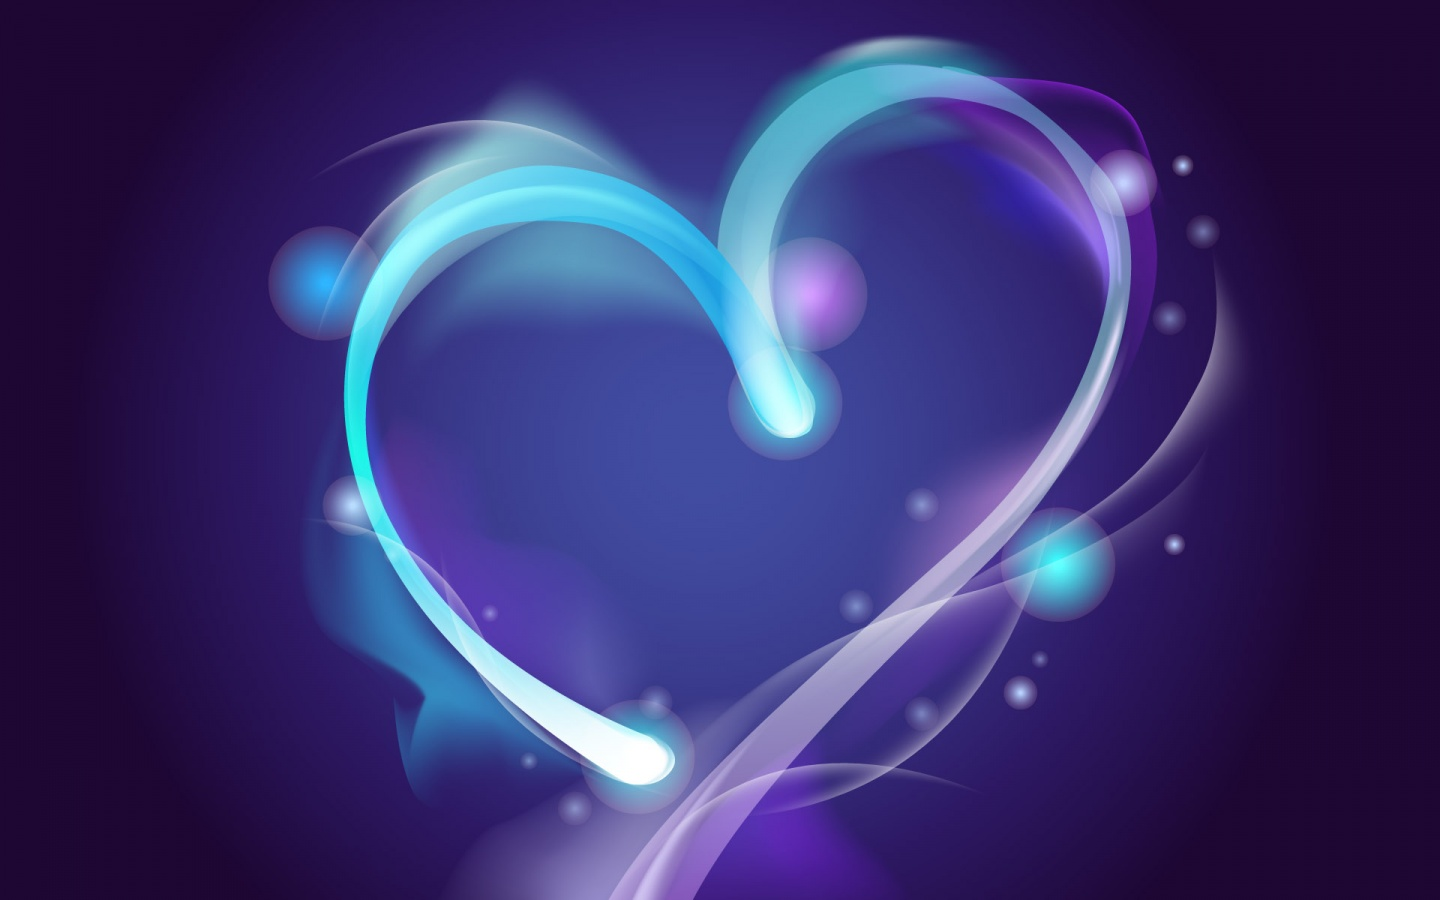 Cool Neon Heart Wallpaper · Cute Neon Heart Wallpaper ...